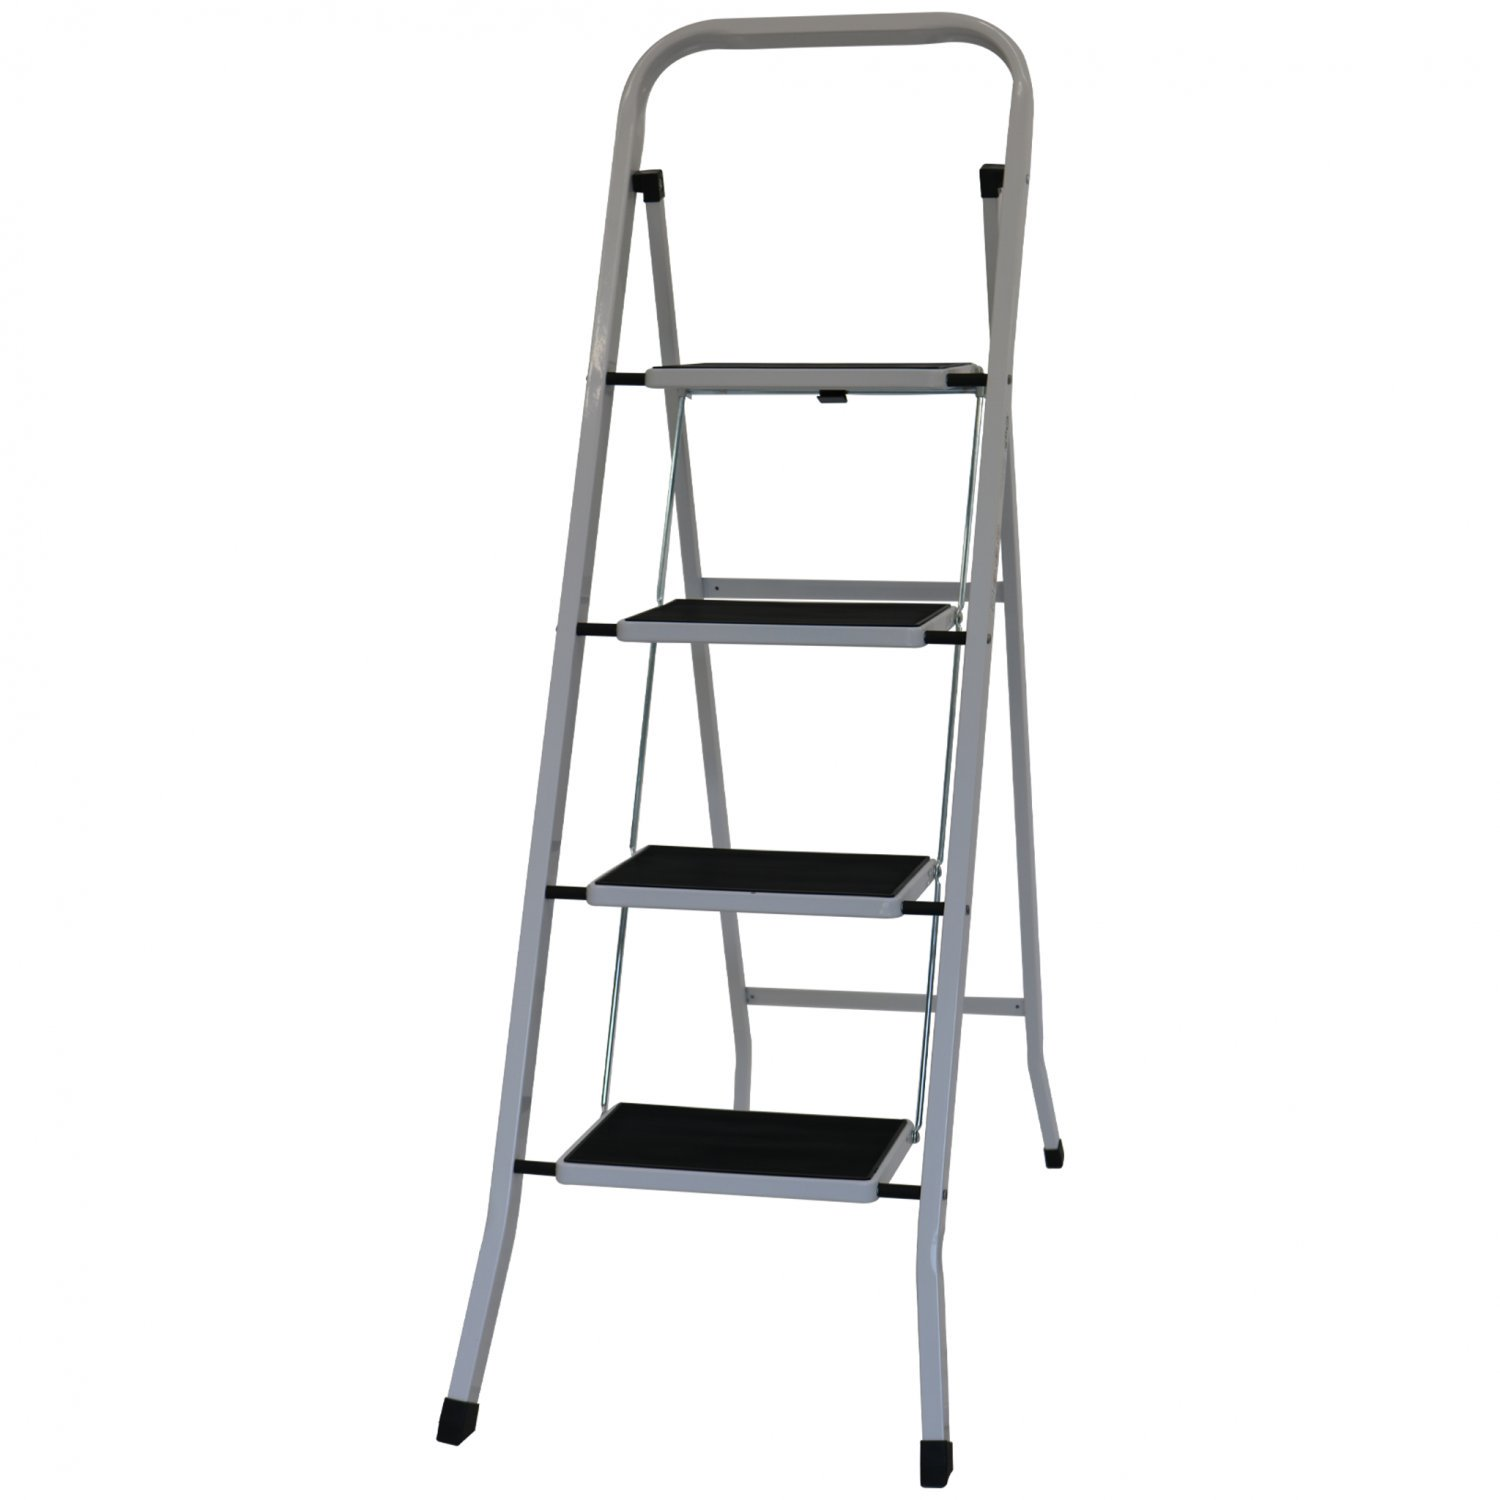 Foldable 4 Step Ladder Stepladder Non Slip Tread Safety Steel